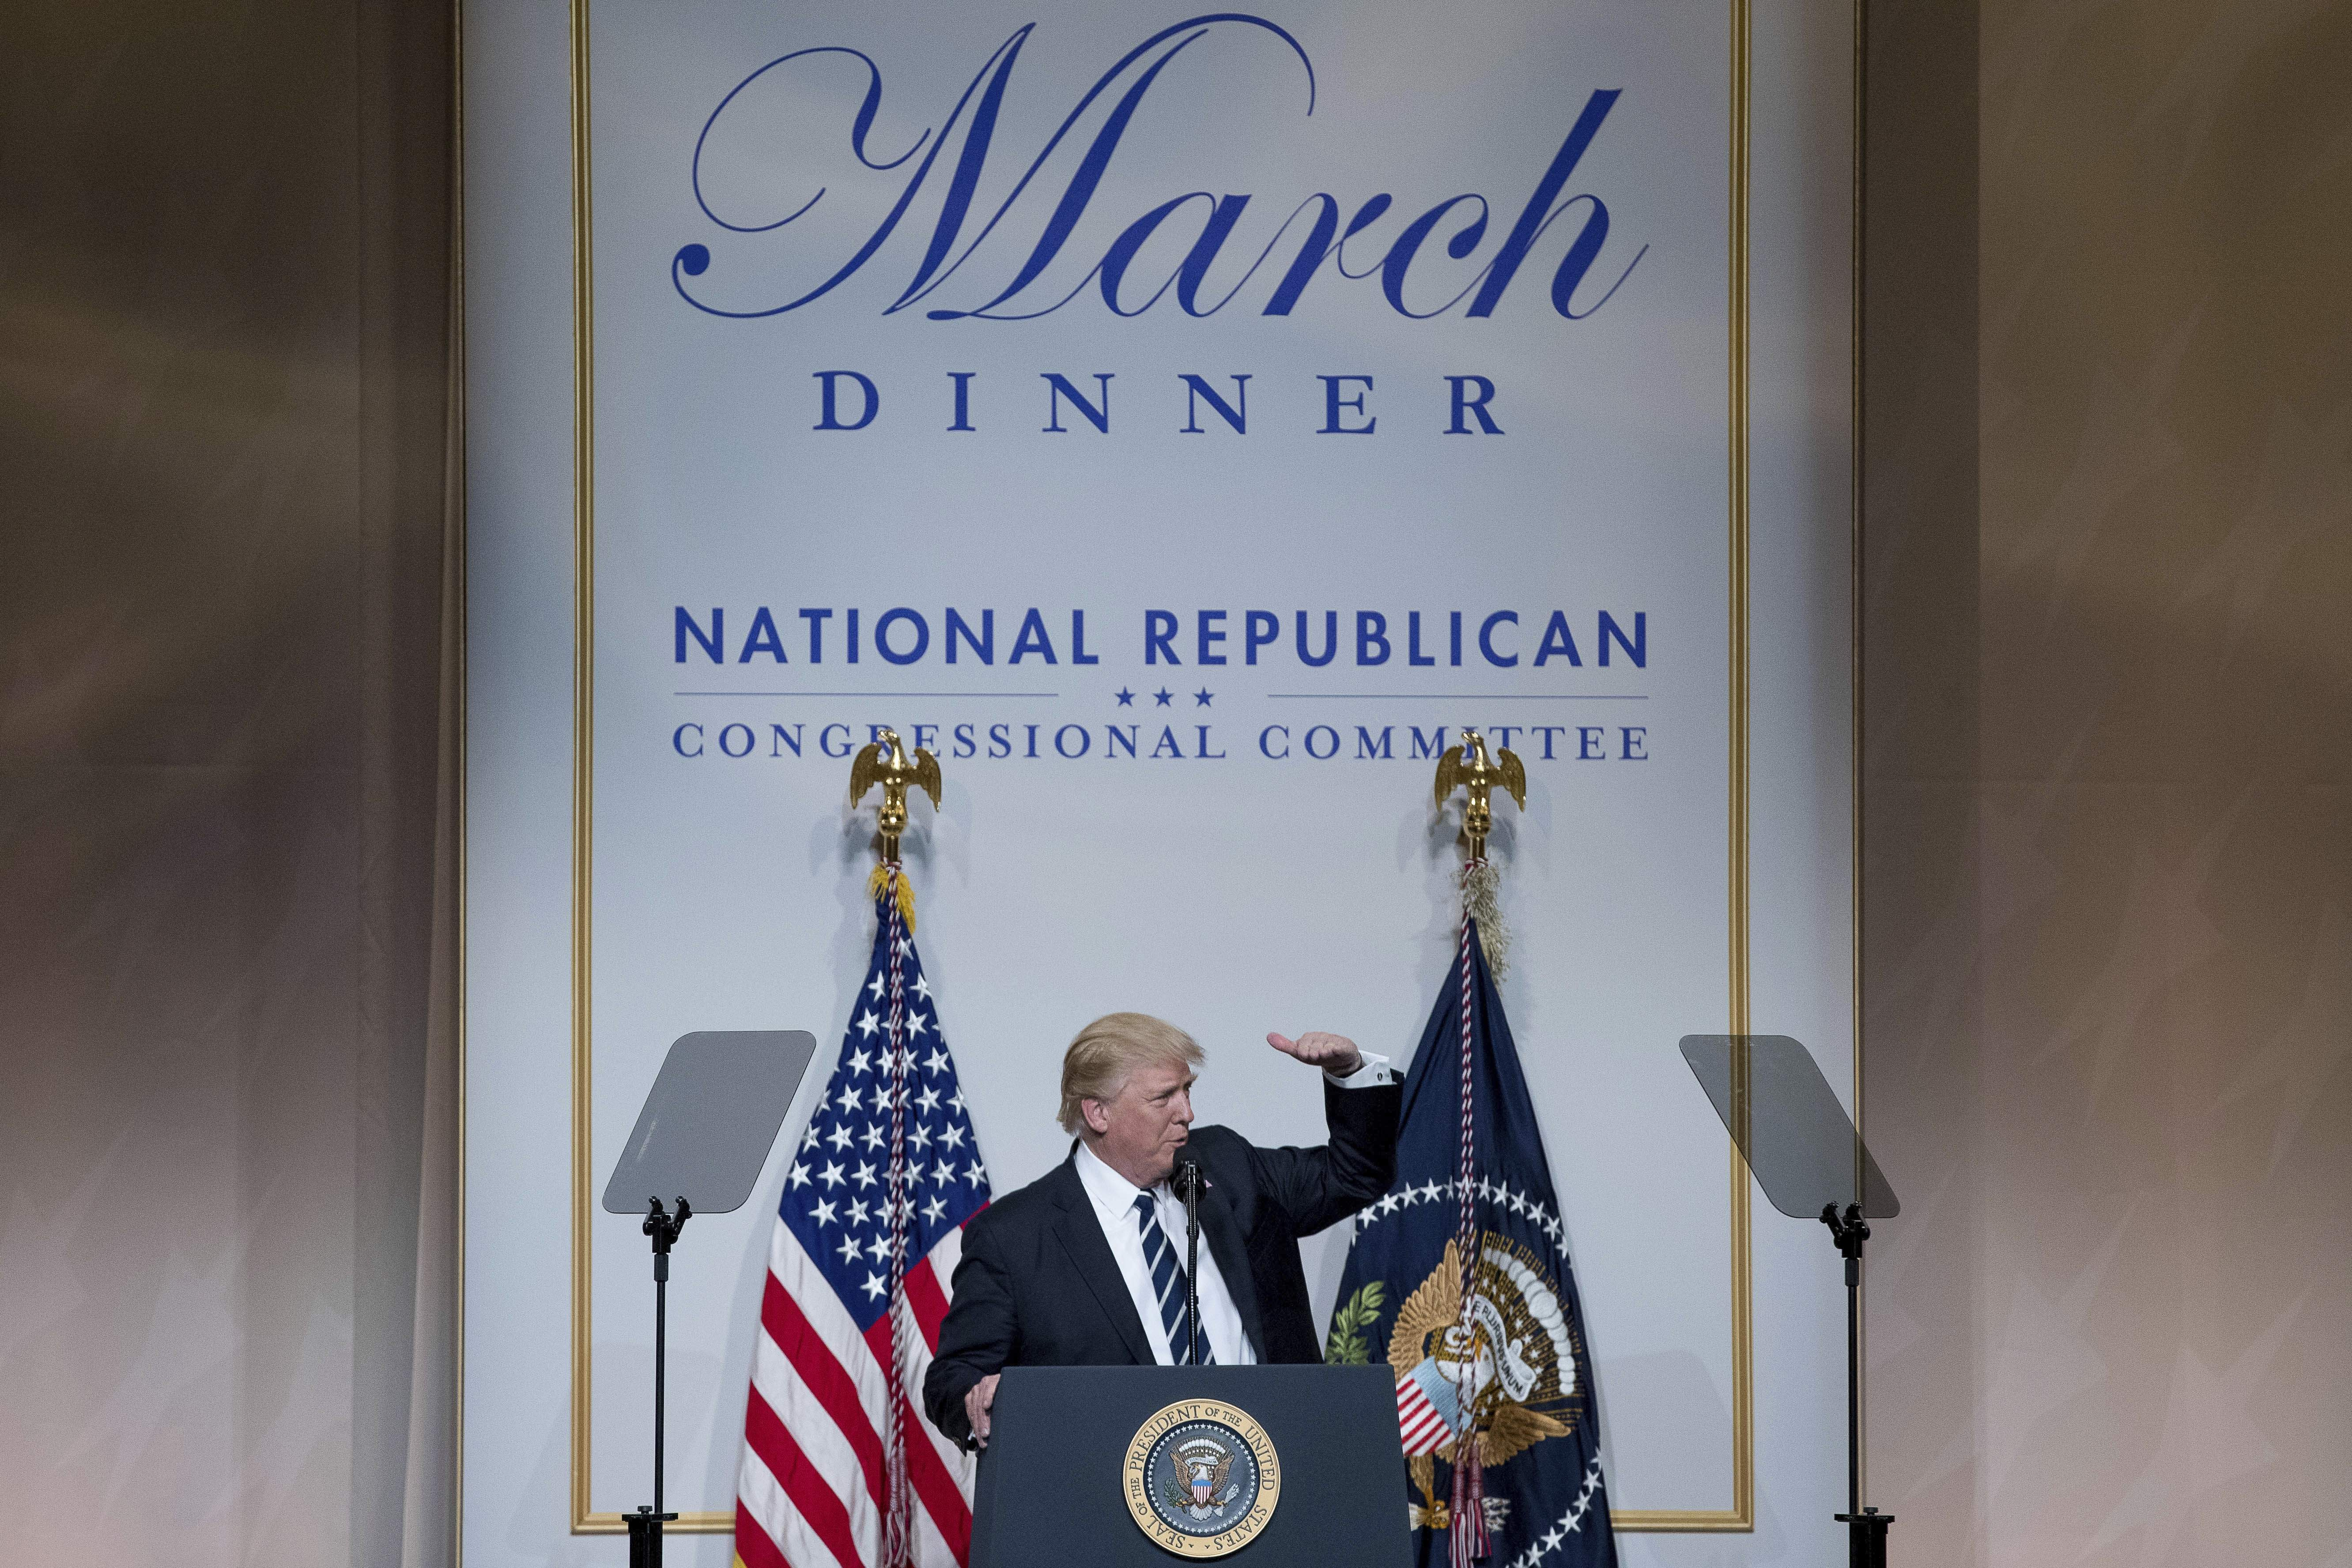 DAY 61 - In this March 21, 2017, file photo, President Donald Trump speaks at the National Republican Congressional Committee March Dinner at the National Building Museum in Washington. (AP Photo/Andrew Harnik, File)